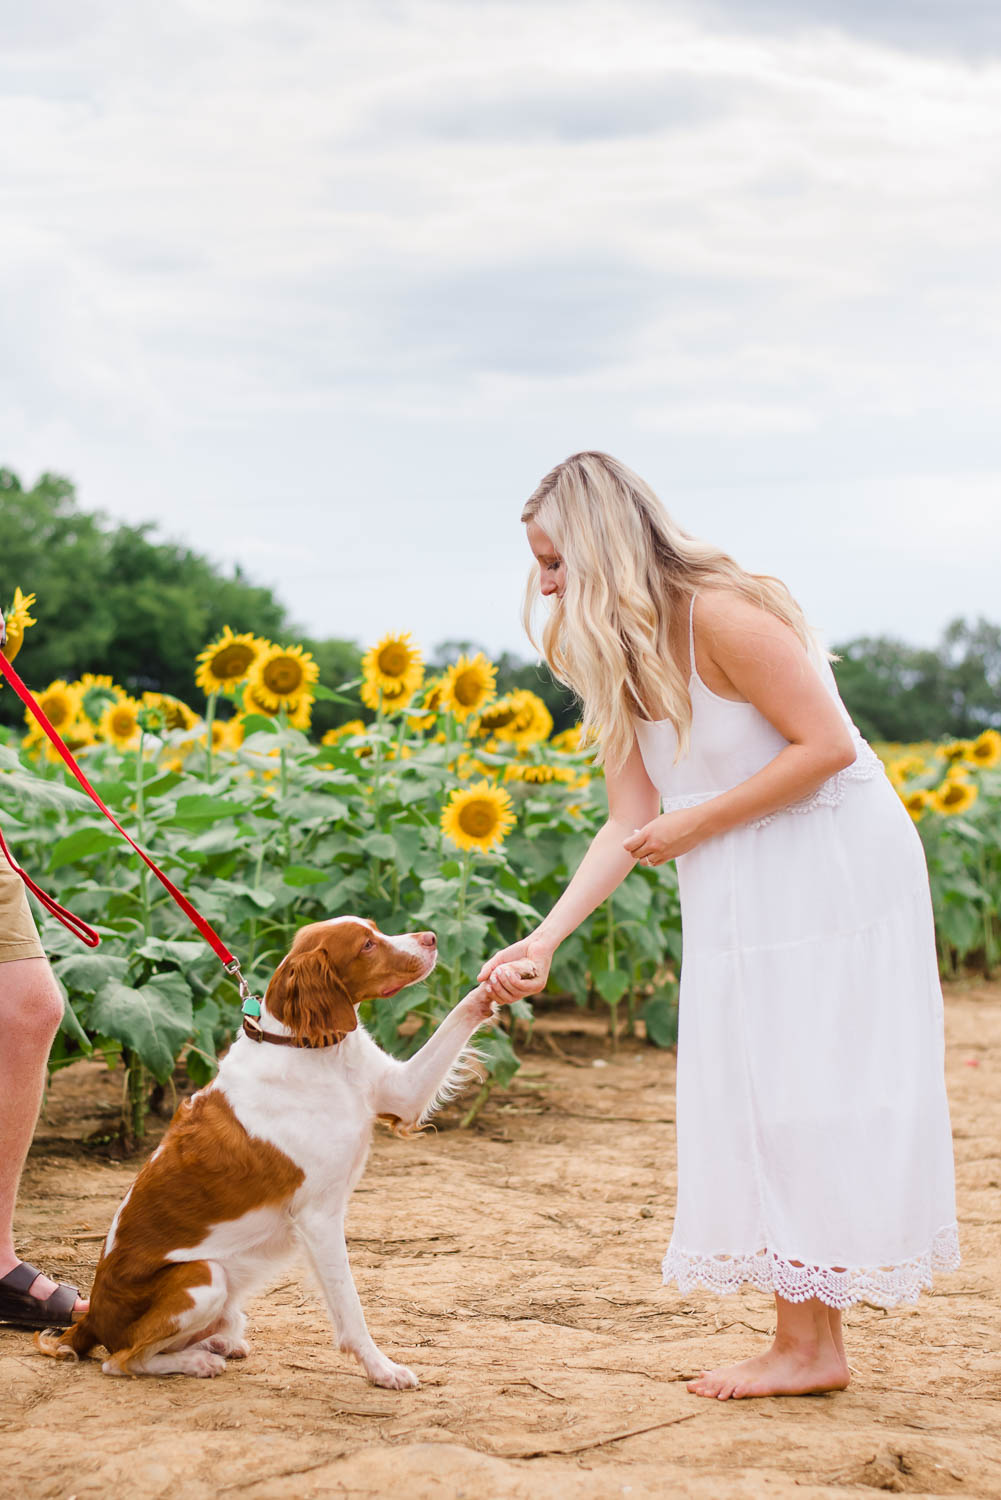 dog shaking the hand of a girl in white sundress